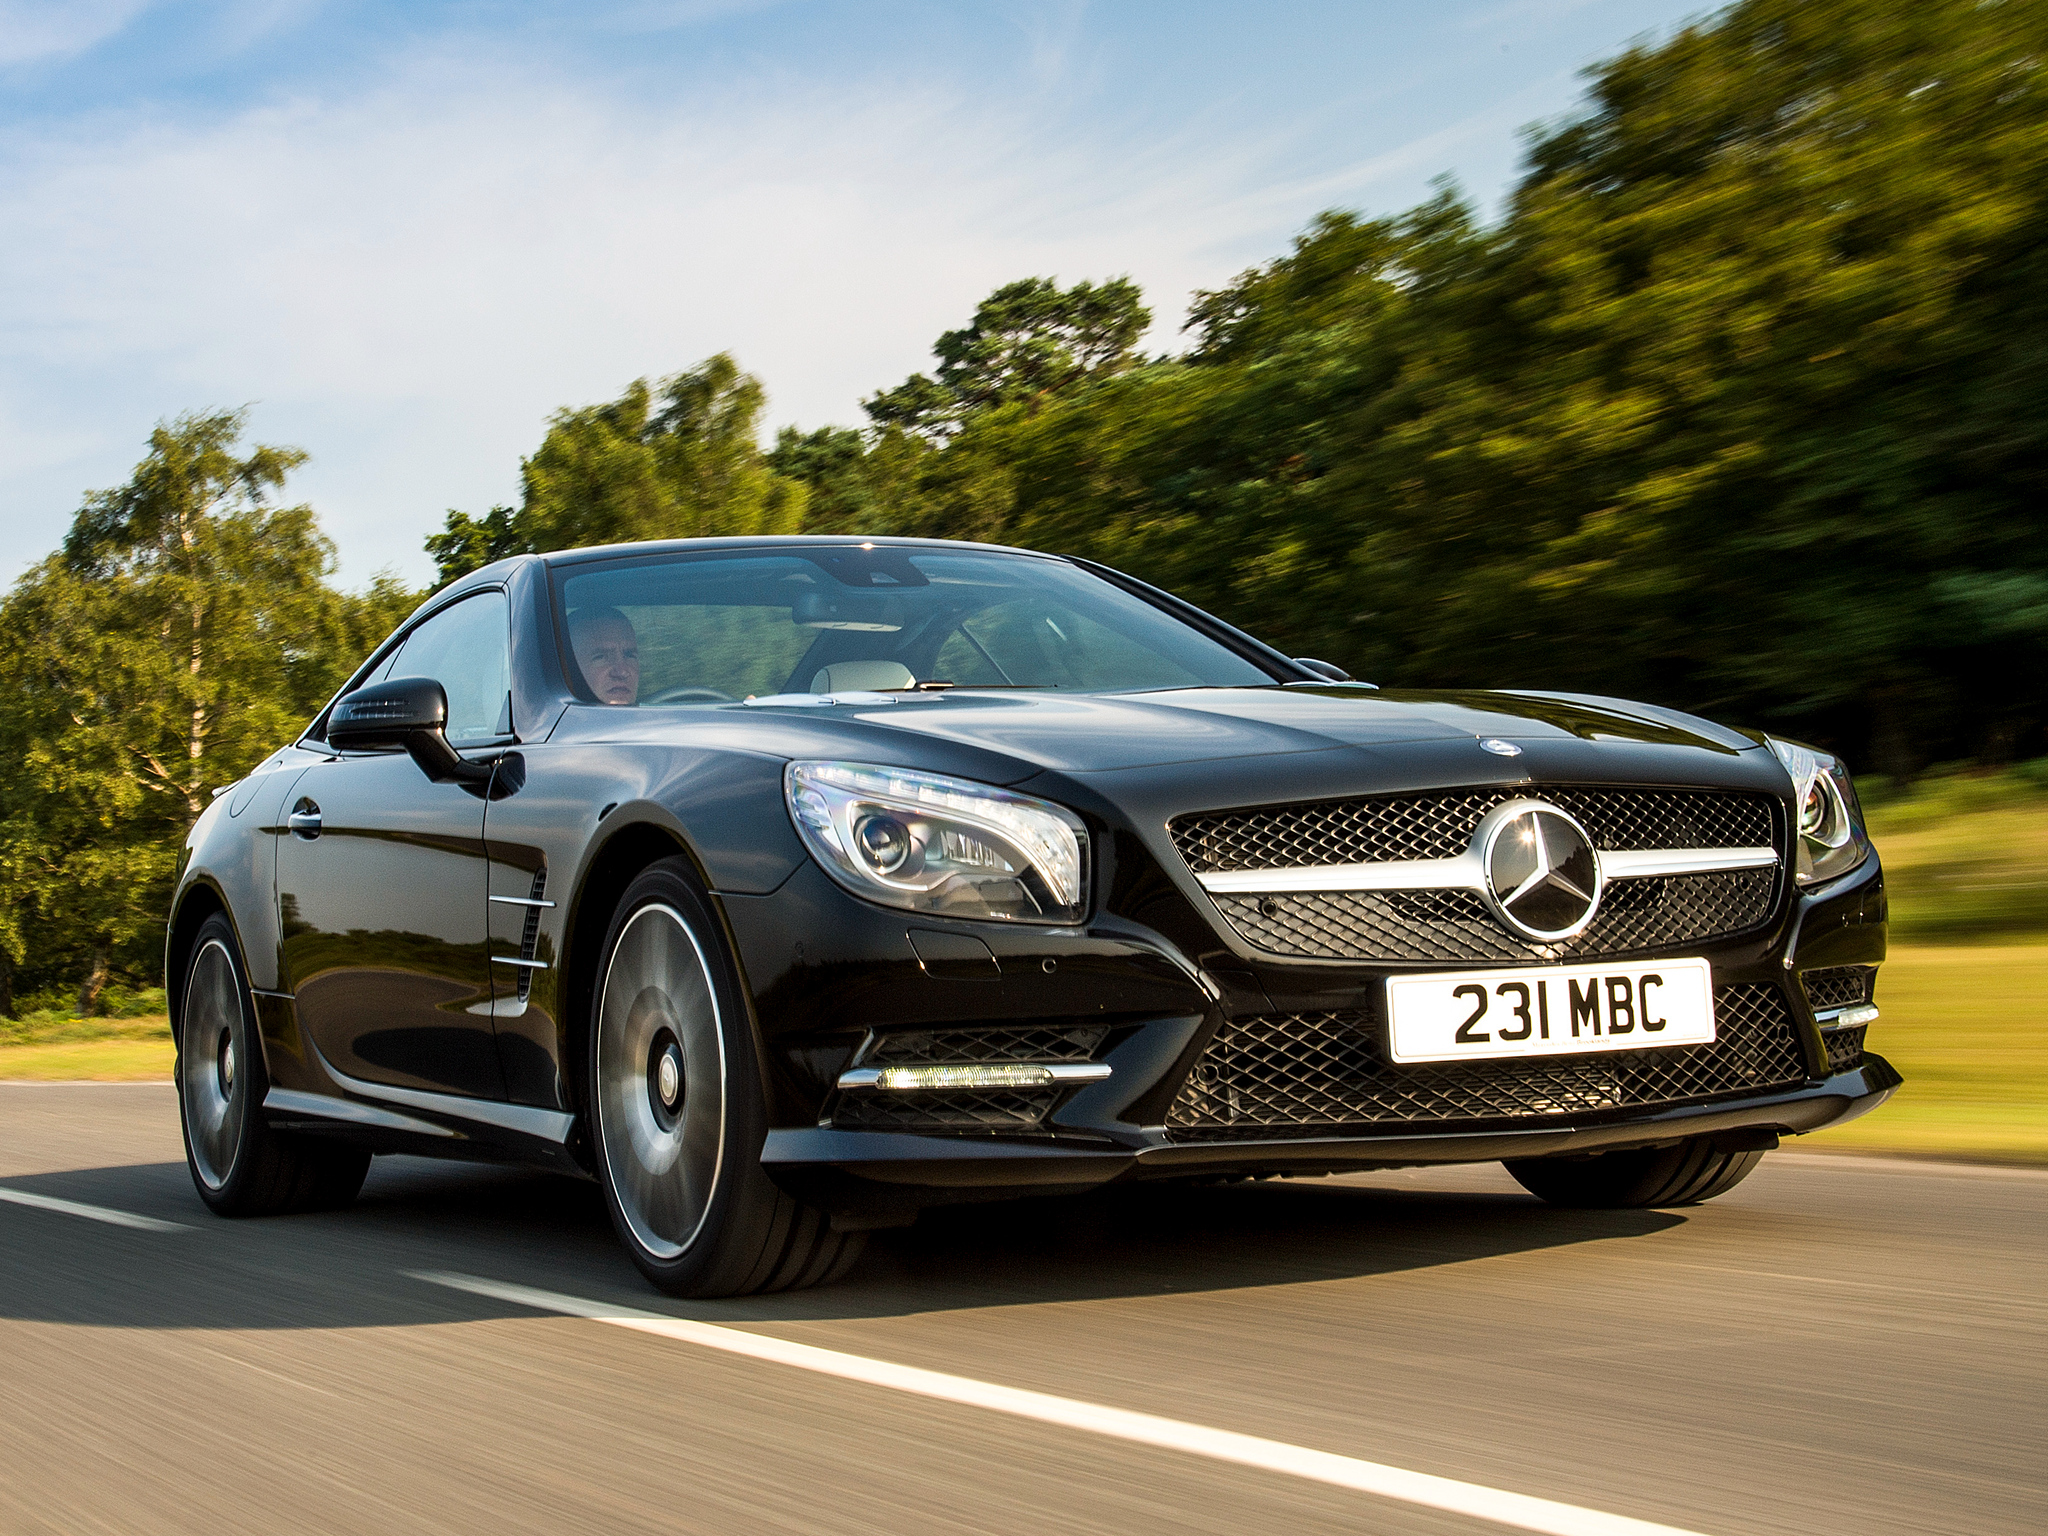 Us spec mercedes benz sl 400 coming with 329 hp 27 mpg for Mercedes benz mpg